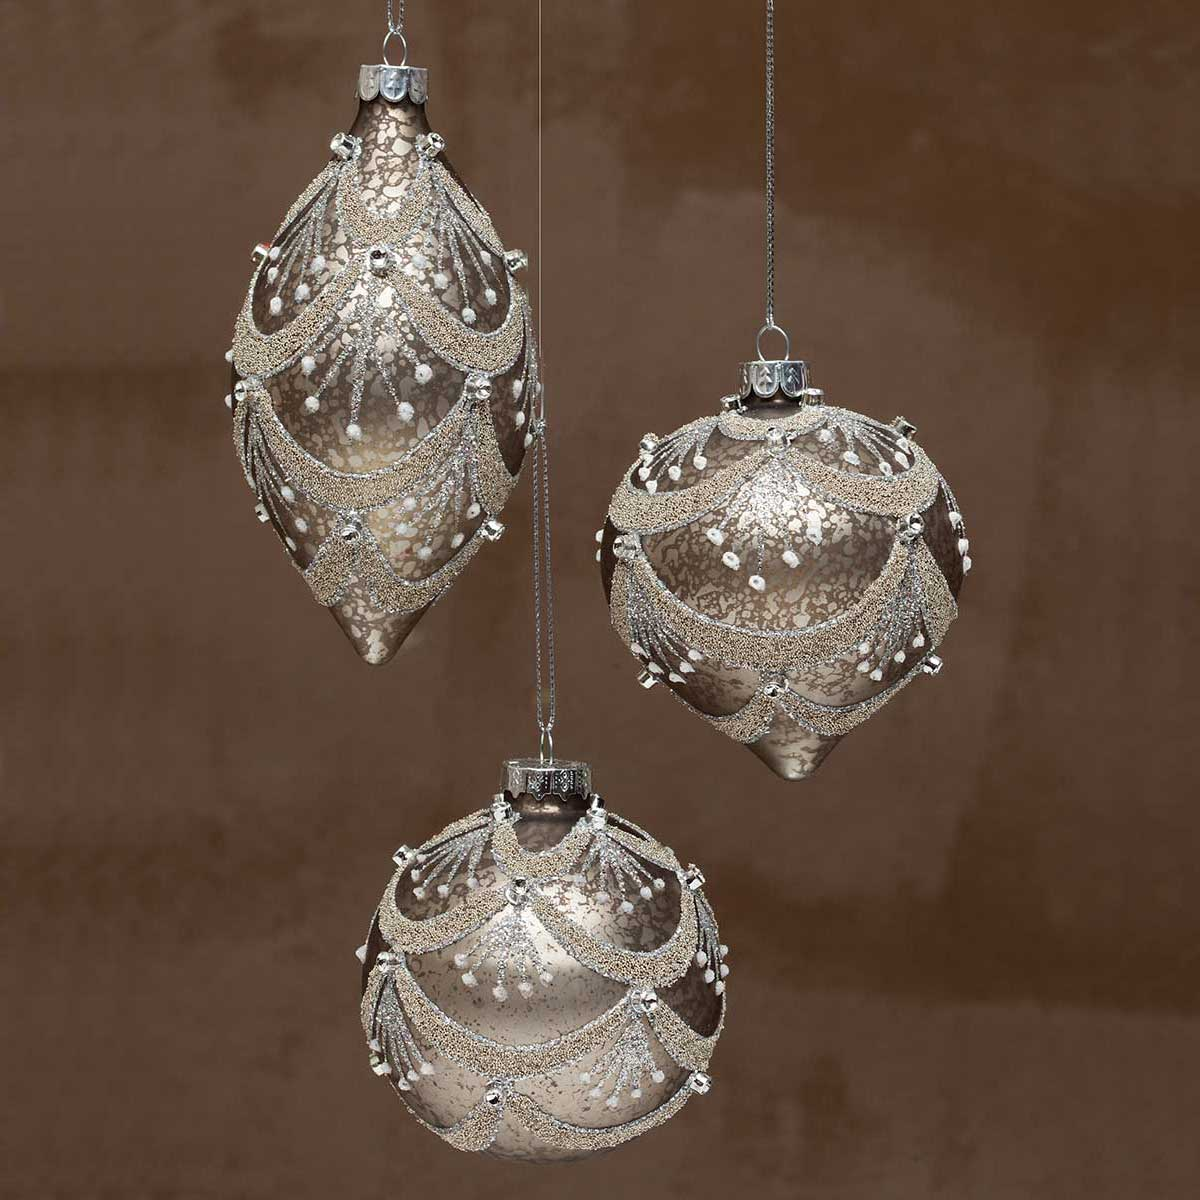 Champagne glass chandelier ball ornament r6932x3 2845 zia champagne glass chandelier ball ornament arubaitofo Image collections